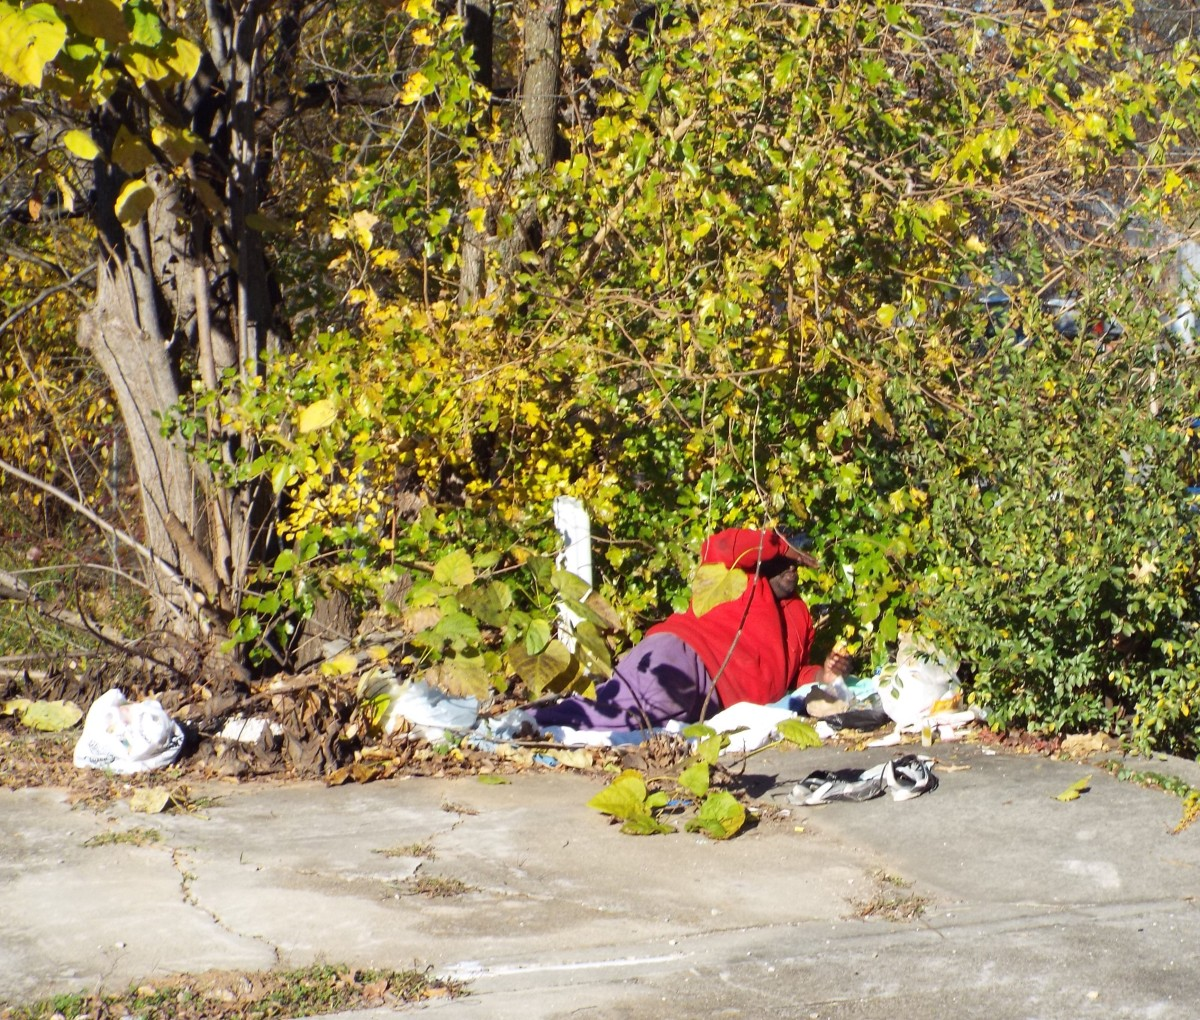 Just One Picture of Homelessness (1 min. read)